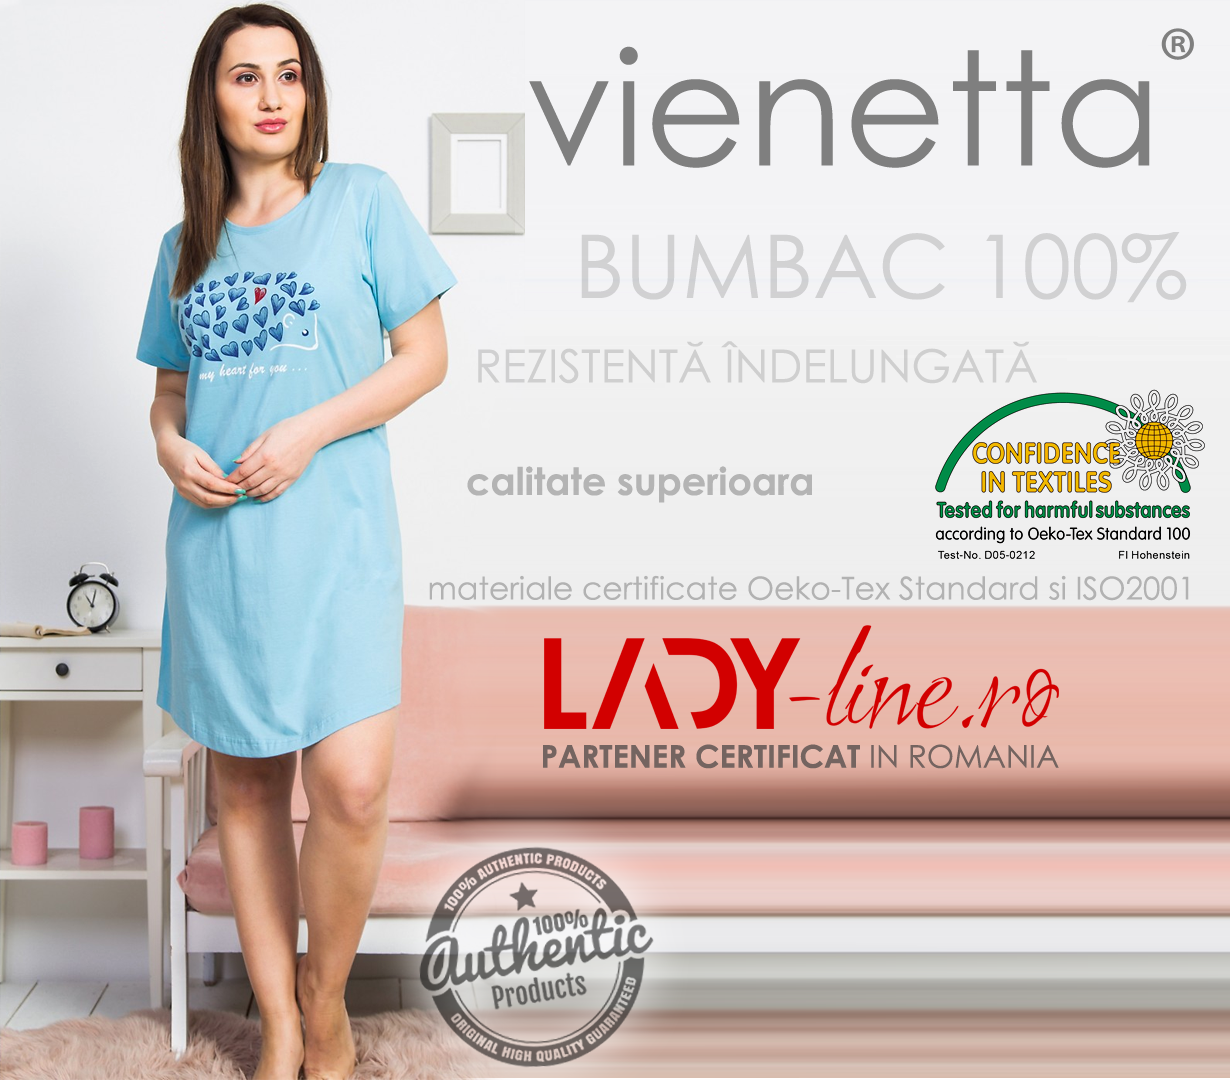 Camasa Dama Vienetta, Bumbac 100%, 'My Heart for You' Blue